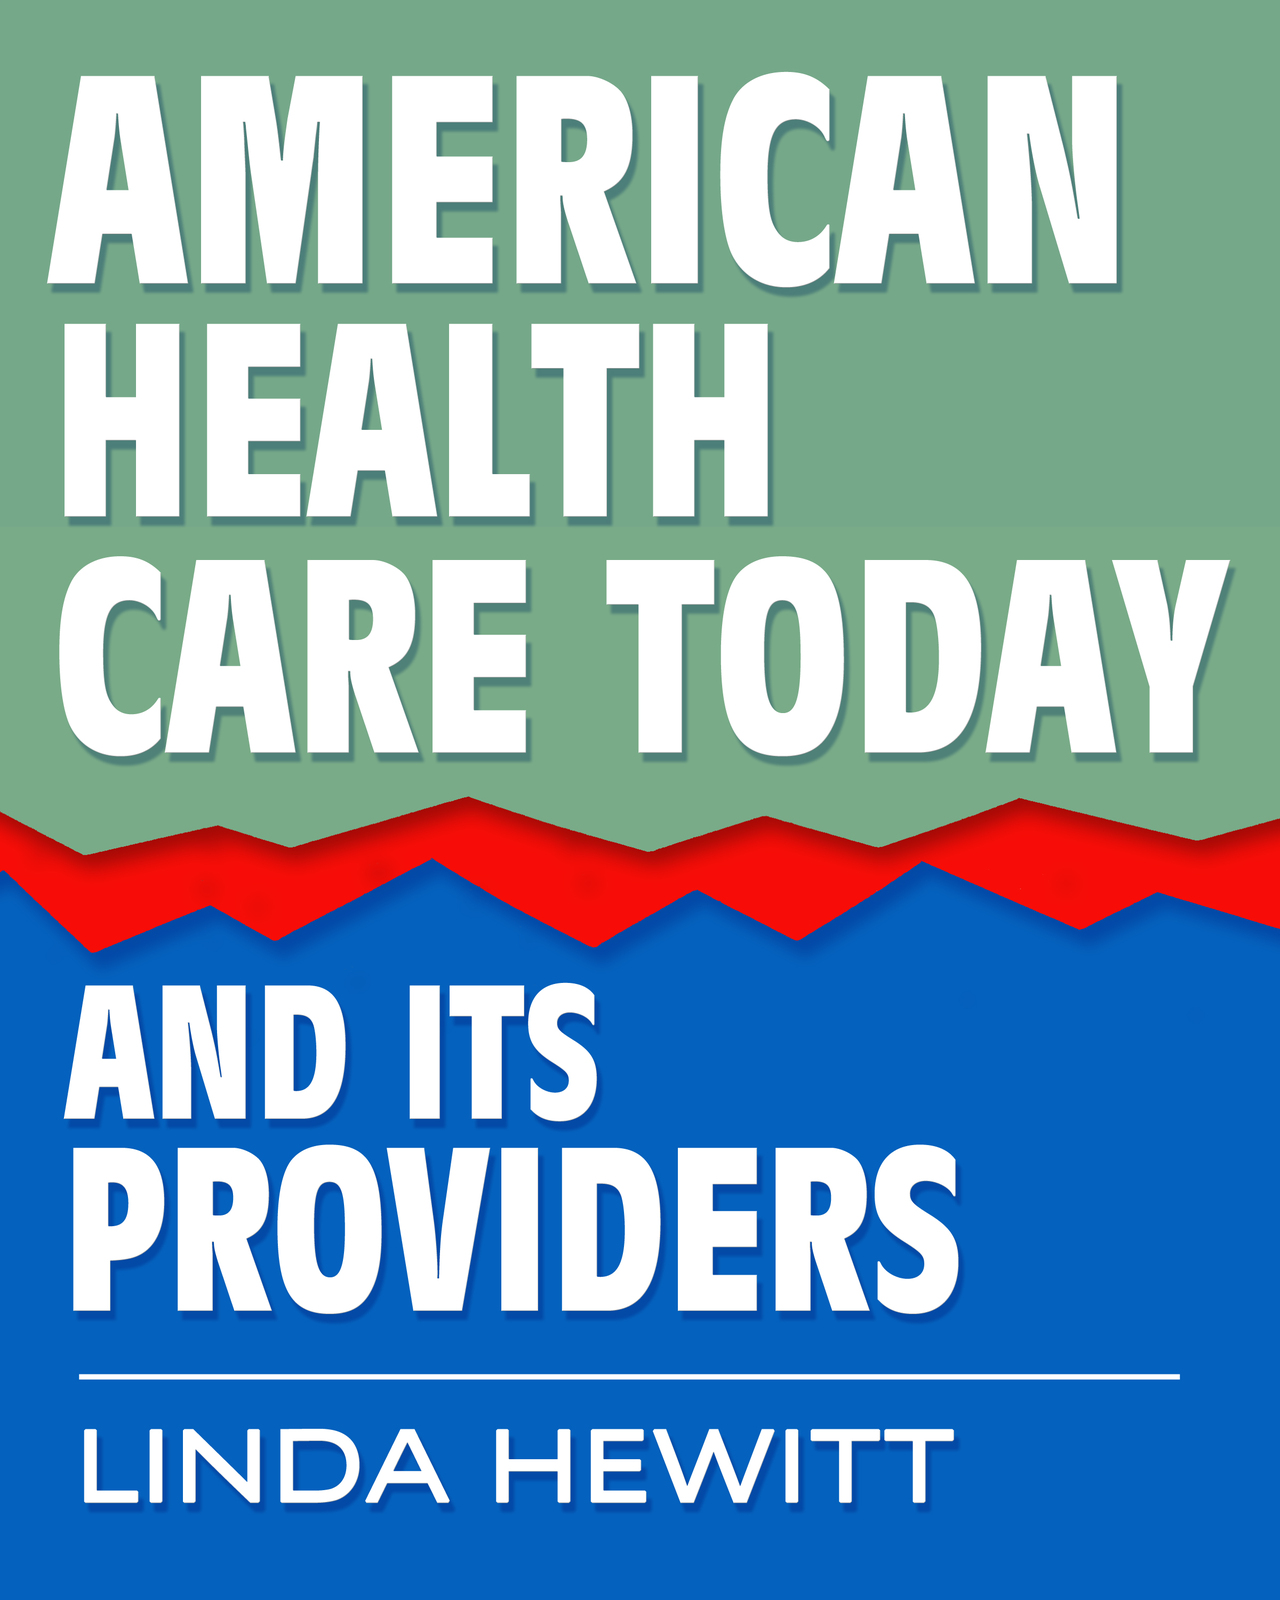 Americanhealthcare cover